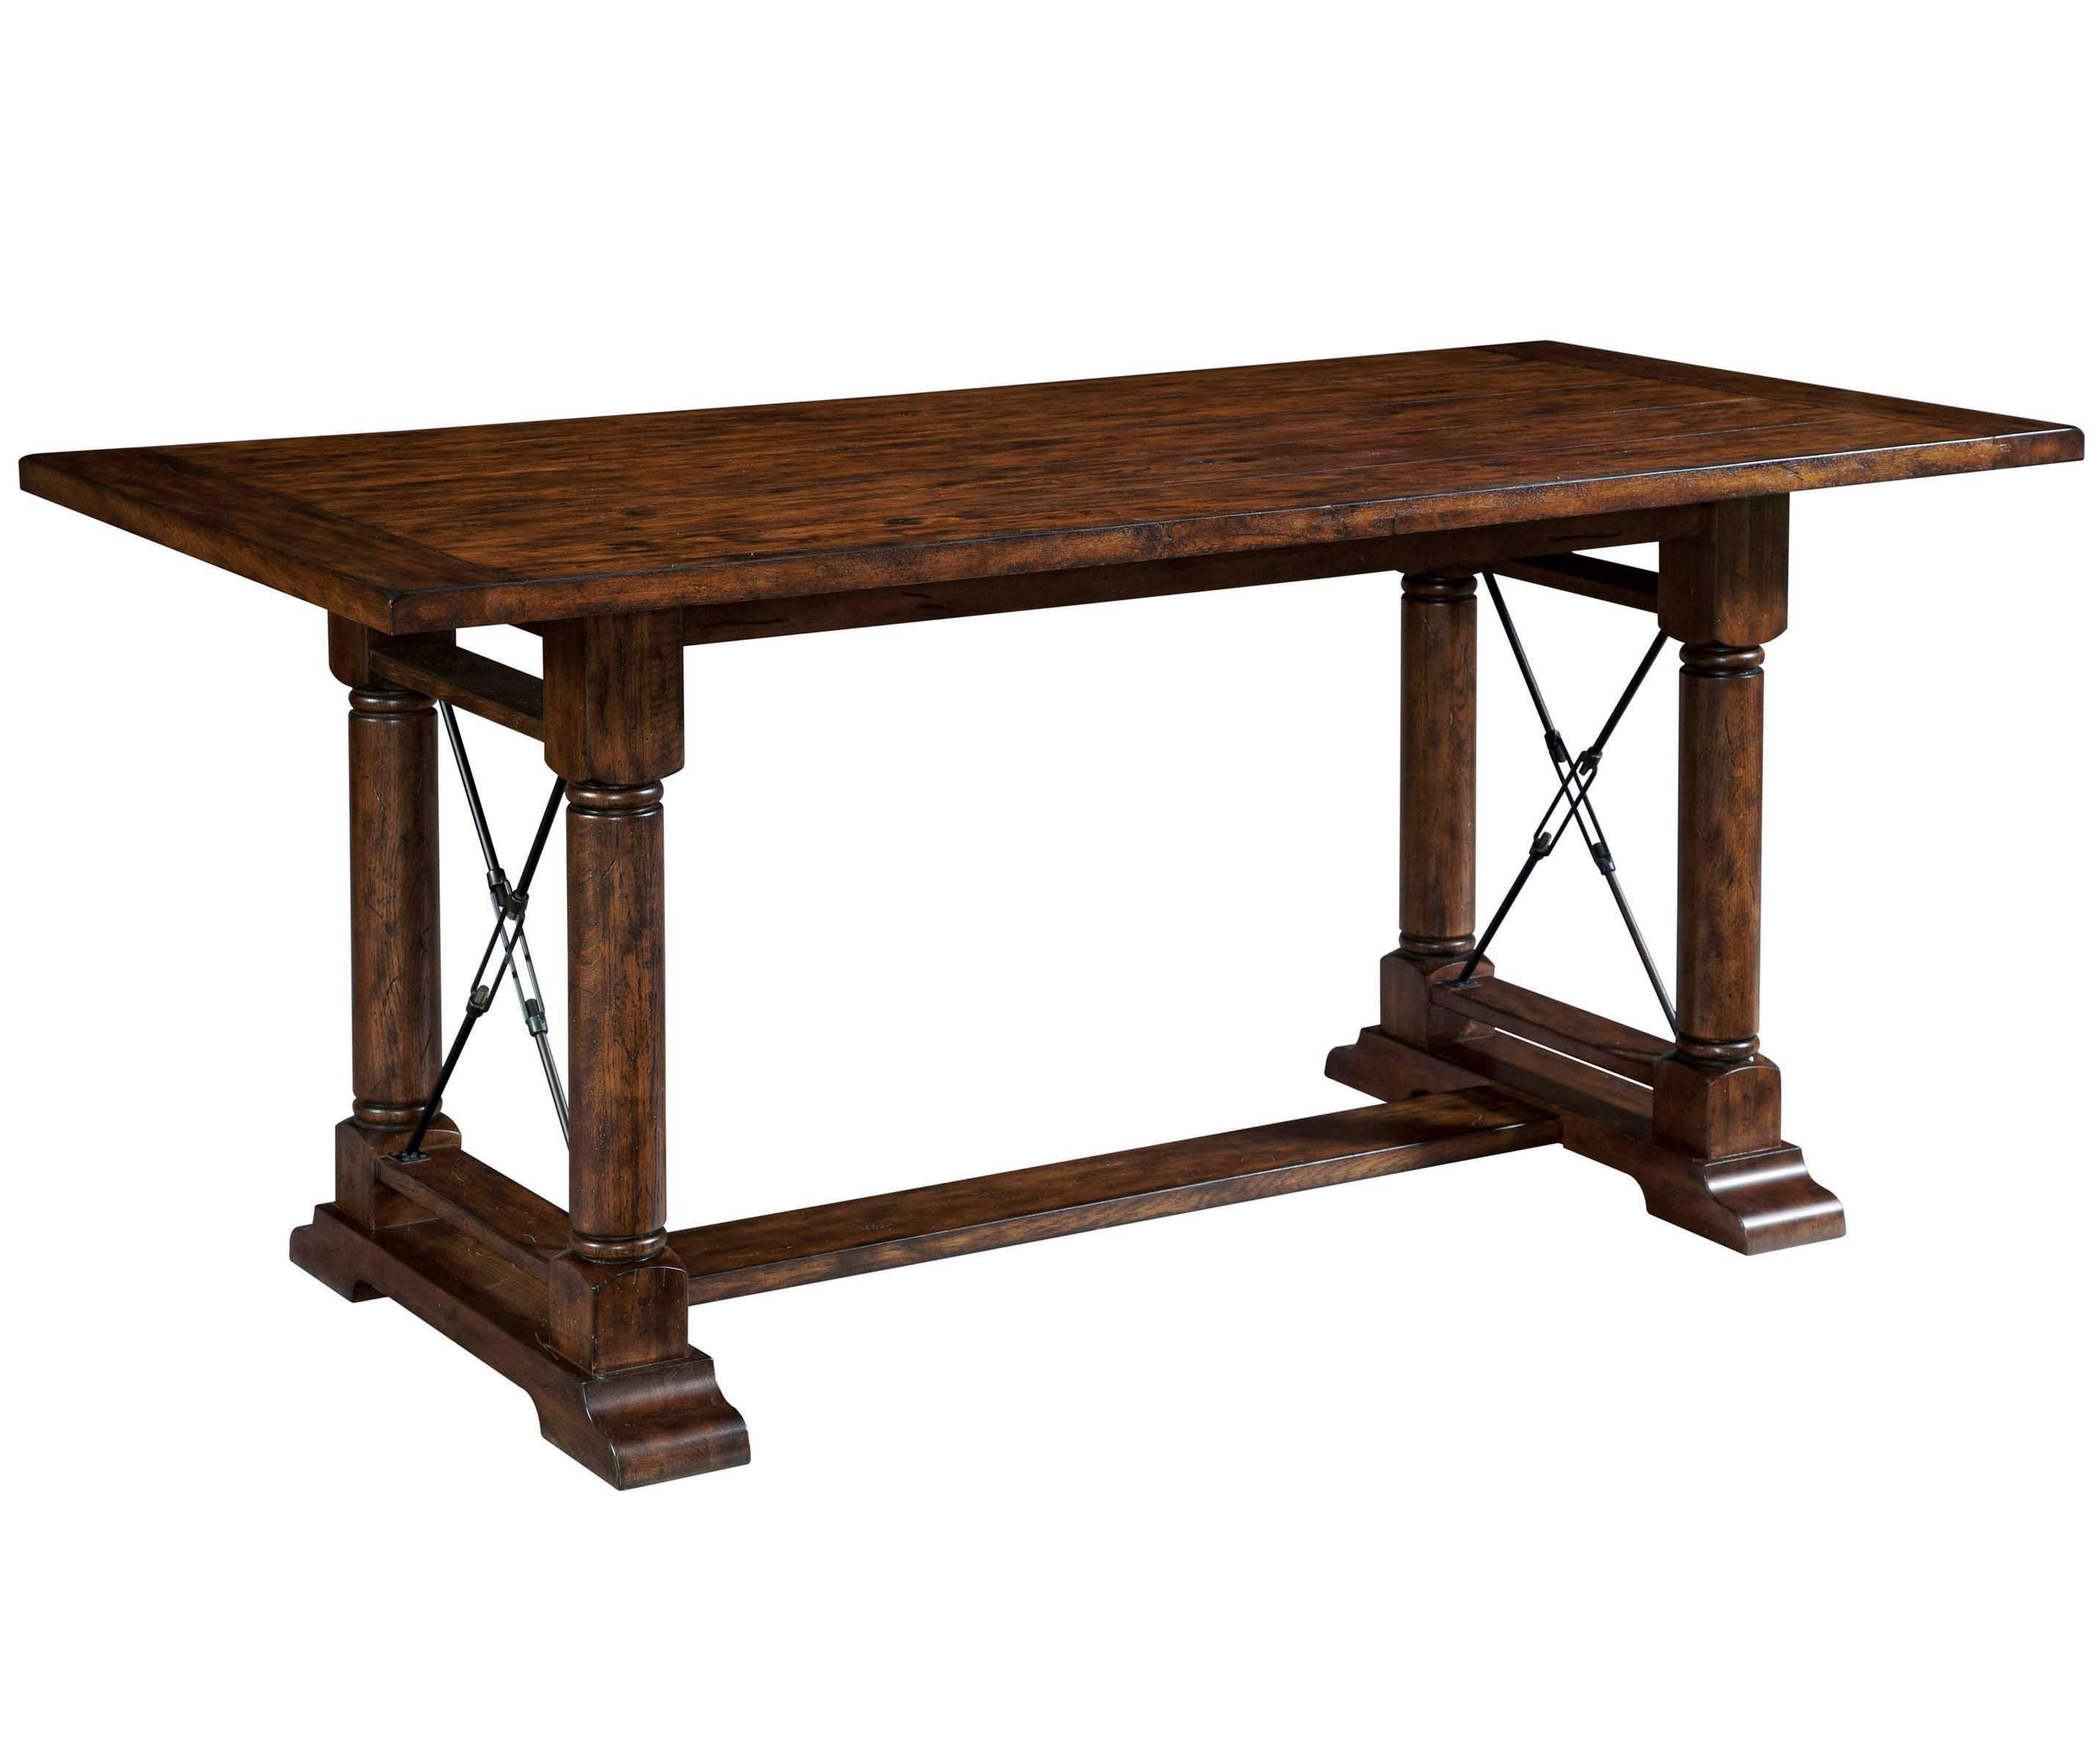 Attic rustic counter height trestle table by broyhill